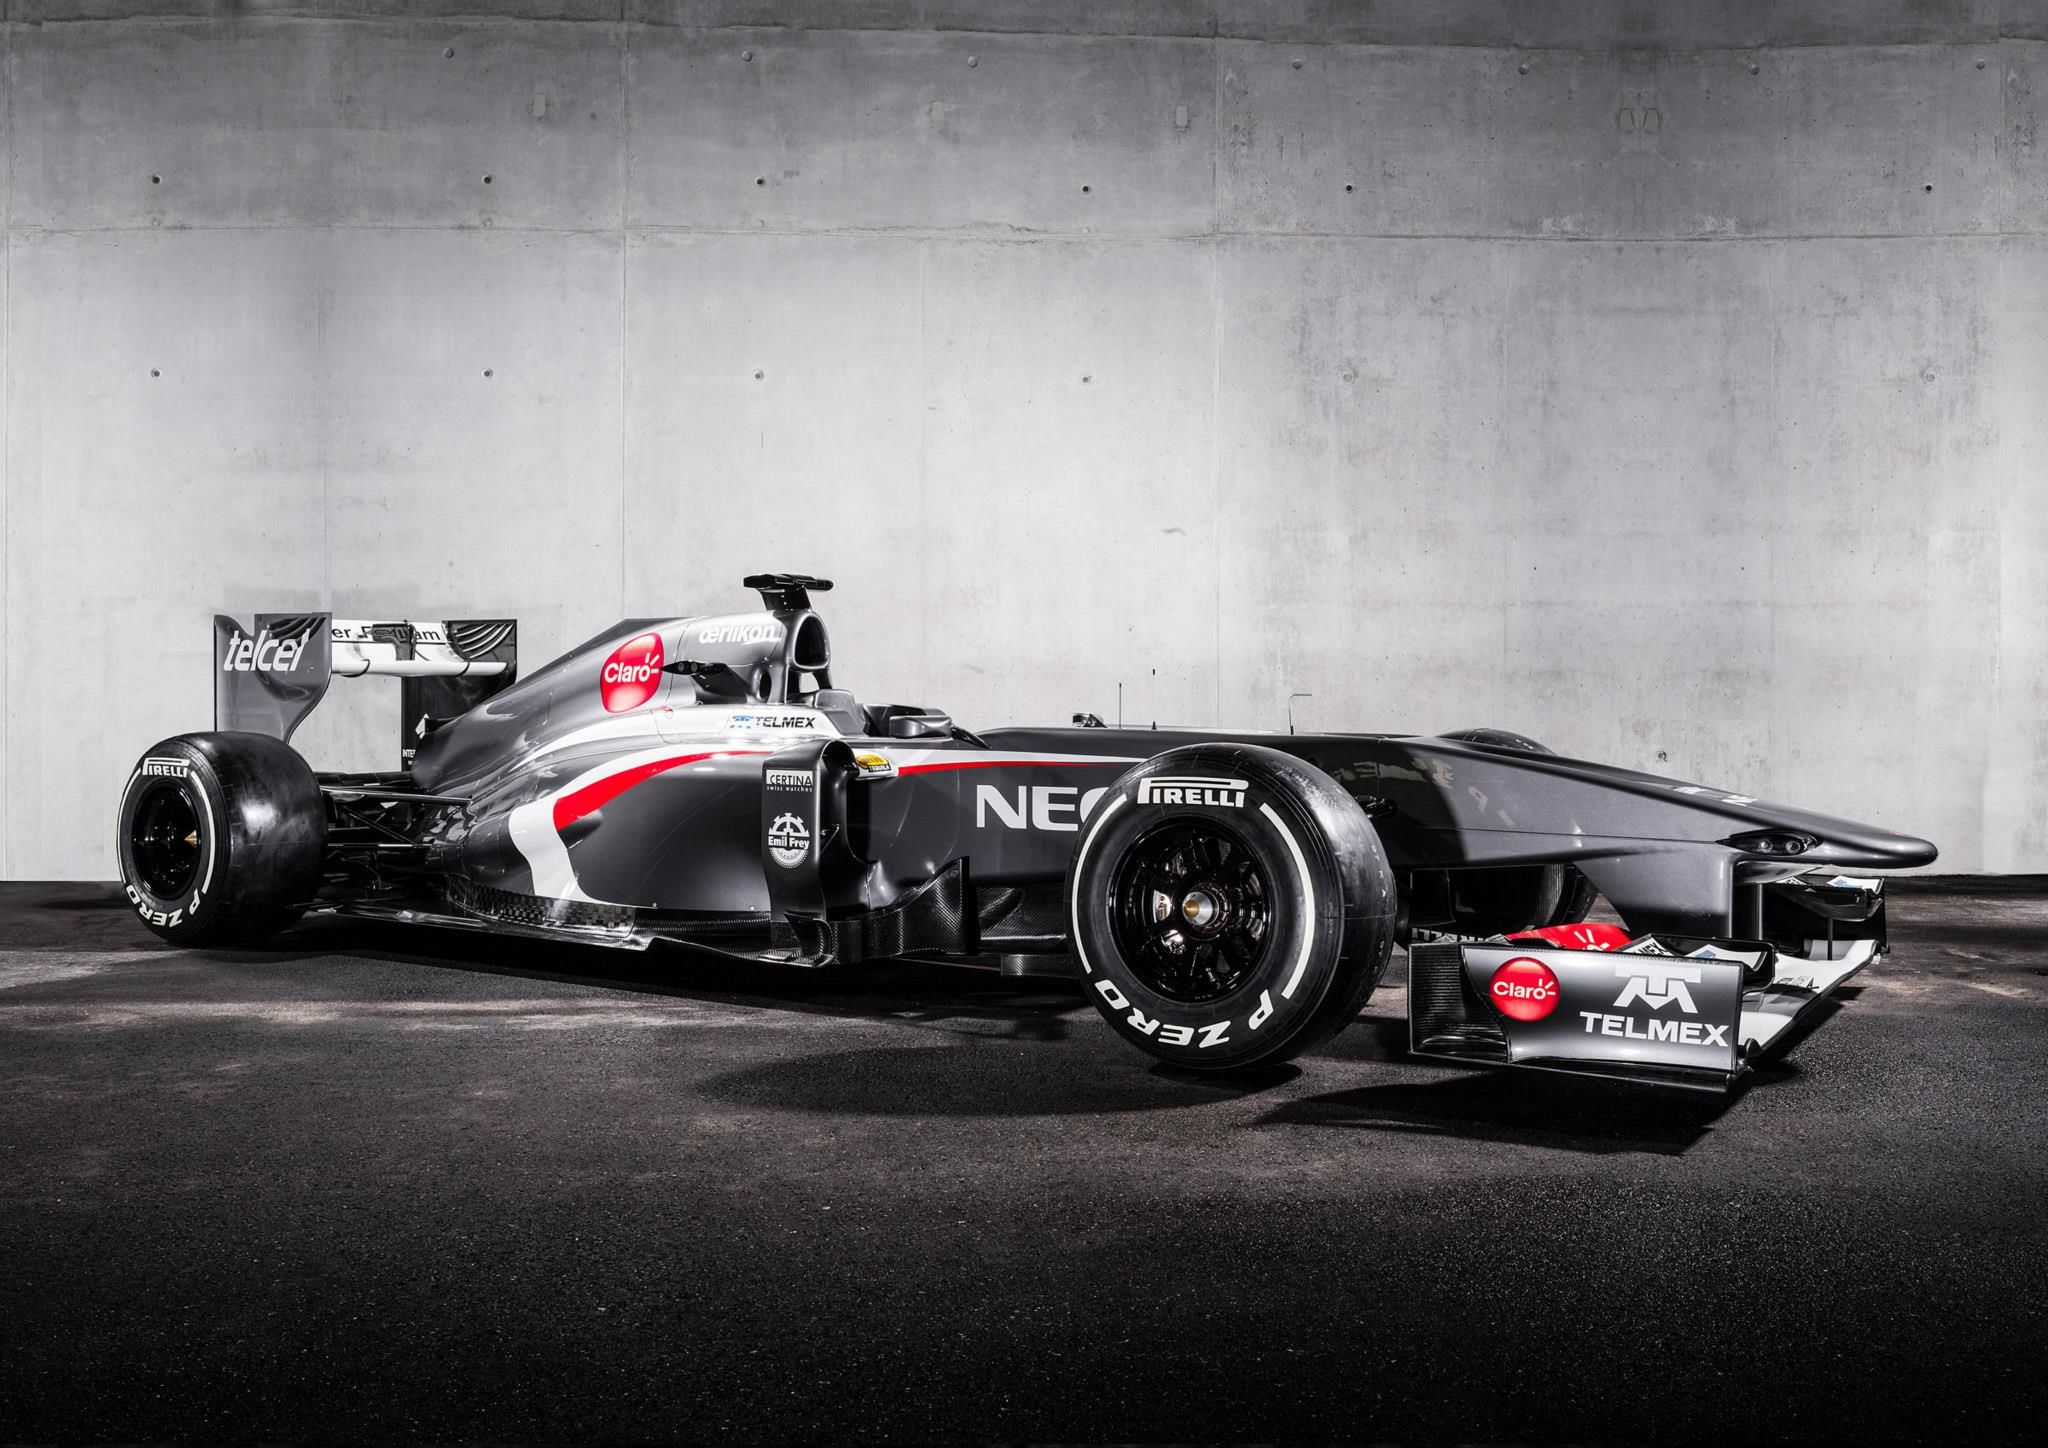 f1 new car releaseF1 Sauber C32Ferrari Car Released Photos  Video http